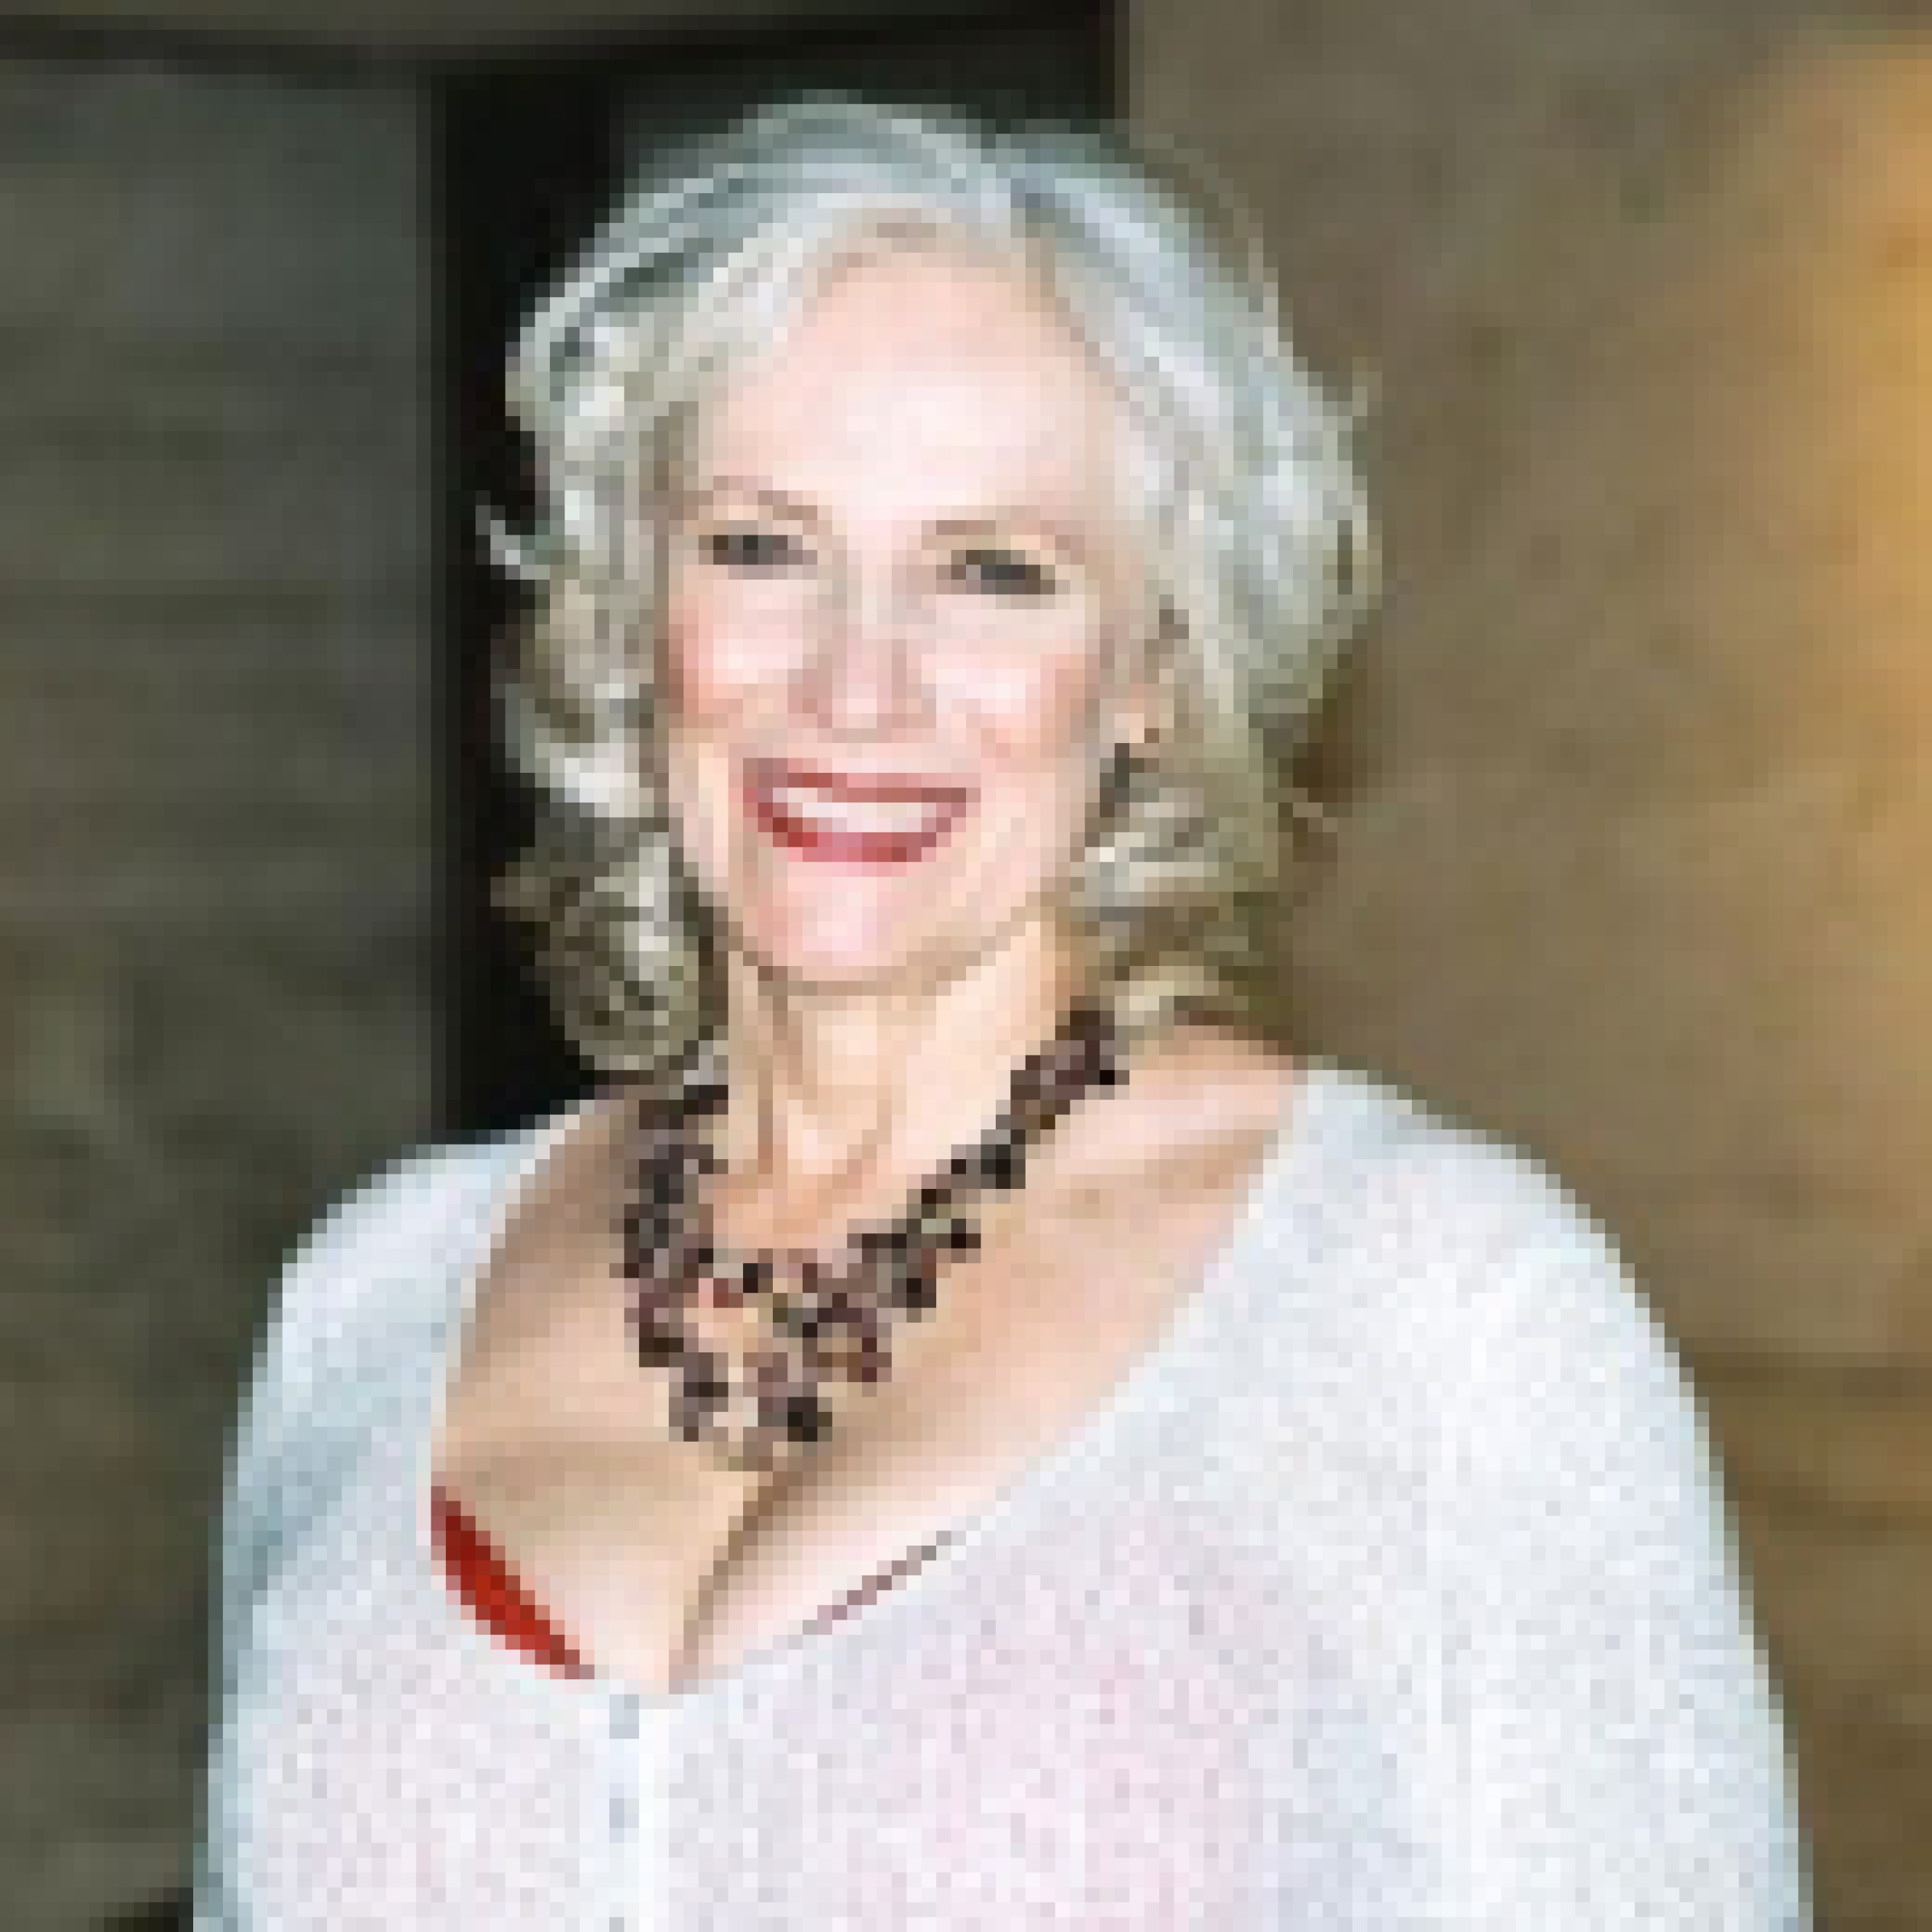 Betty Buckley nude (87 photo), Tits, Cleavage, Boobs, butt 2017